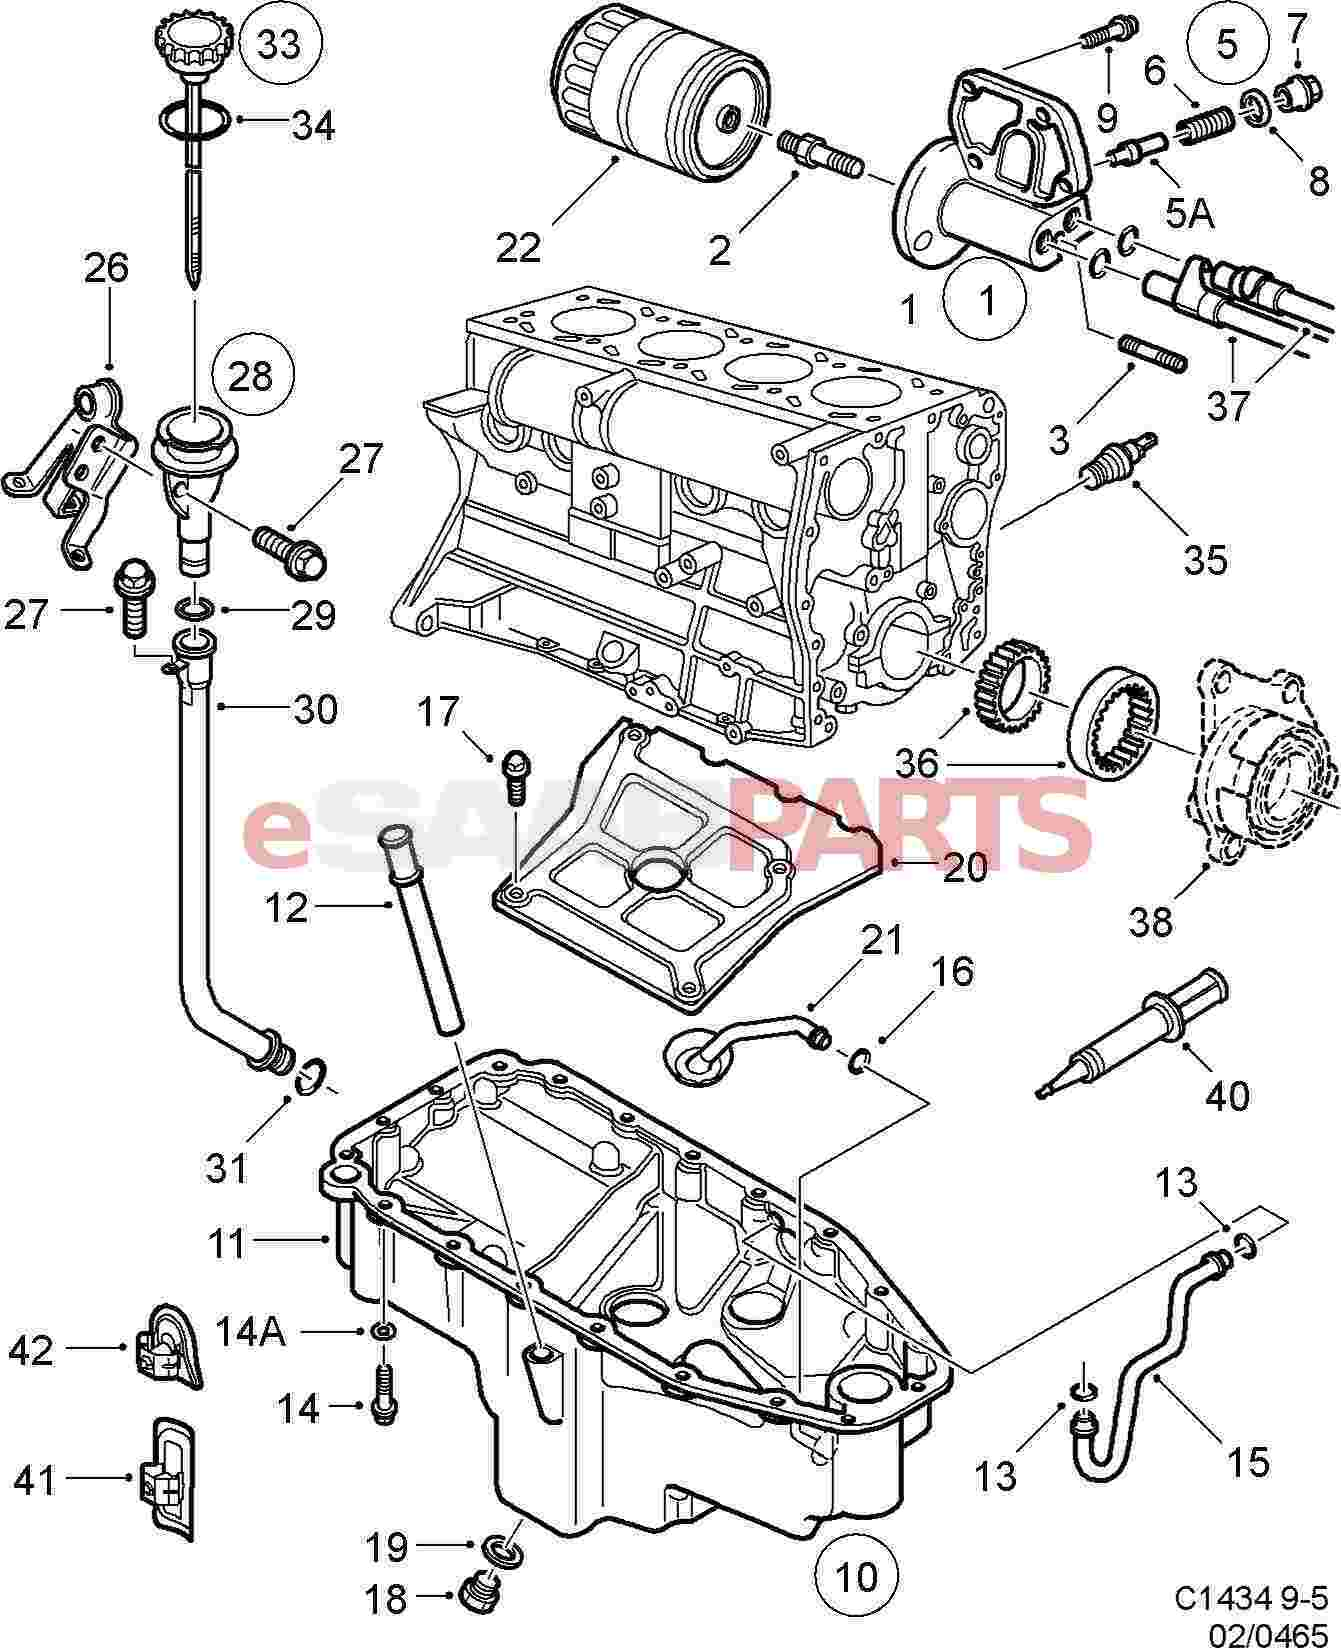 Diagram  2006 Saab 9 3 Engine Diagram Full Version Hd